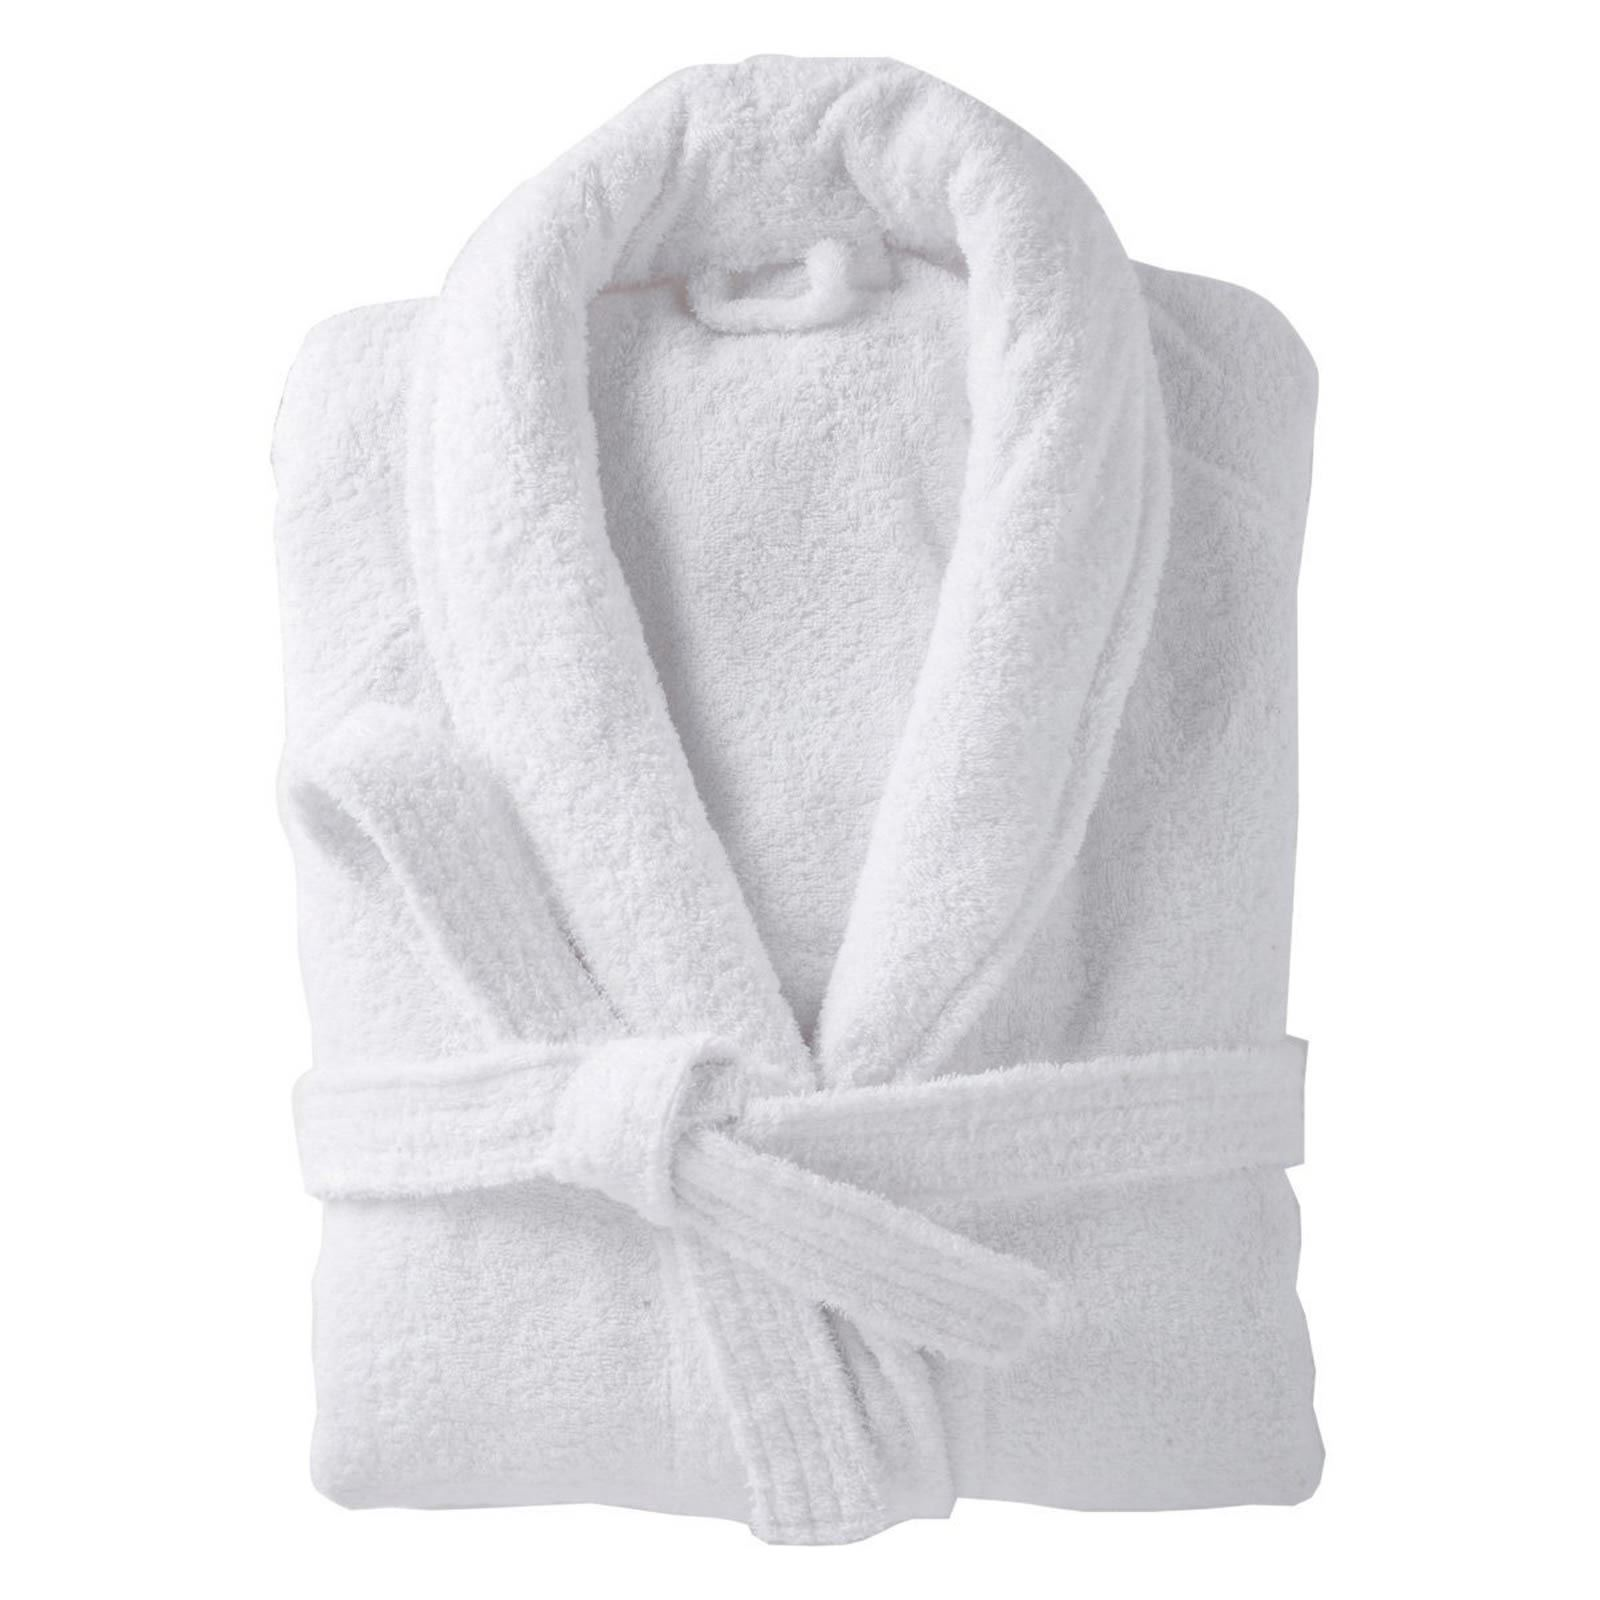 100% Cotton Terry Toweling Shawl Collar White Bathrobe Dressing Gown Bath Robe